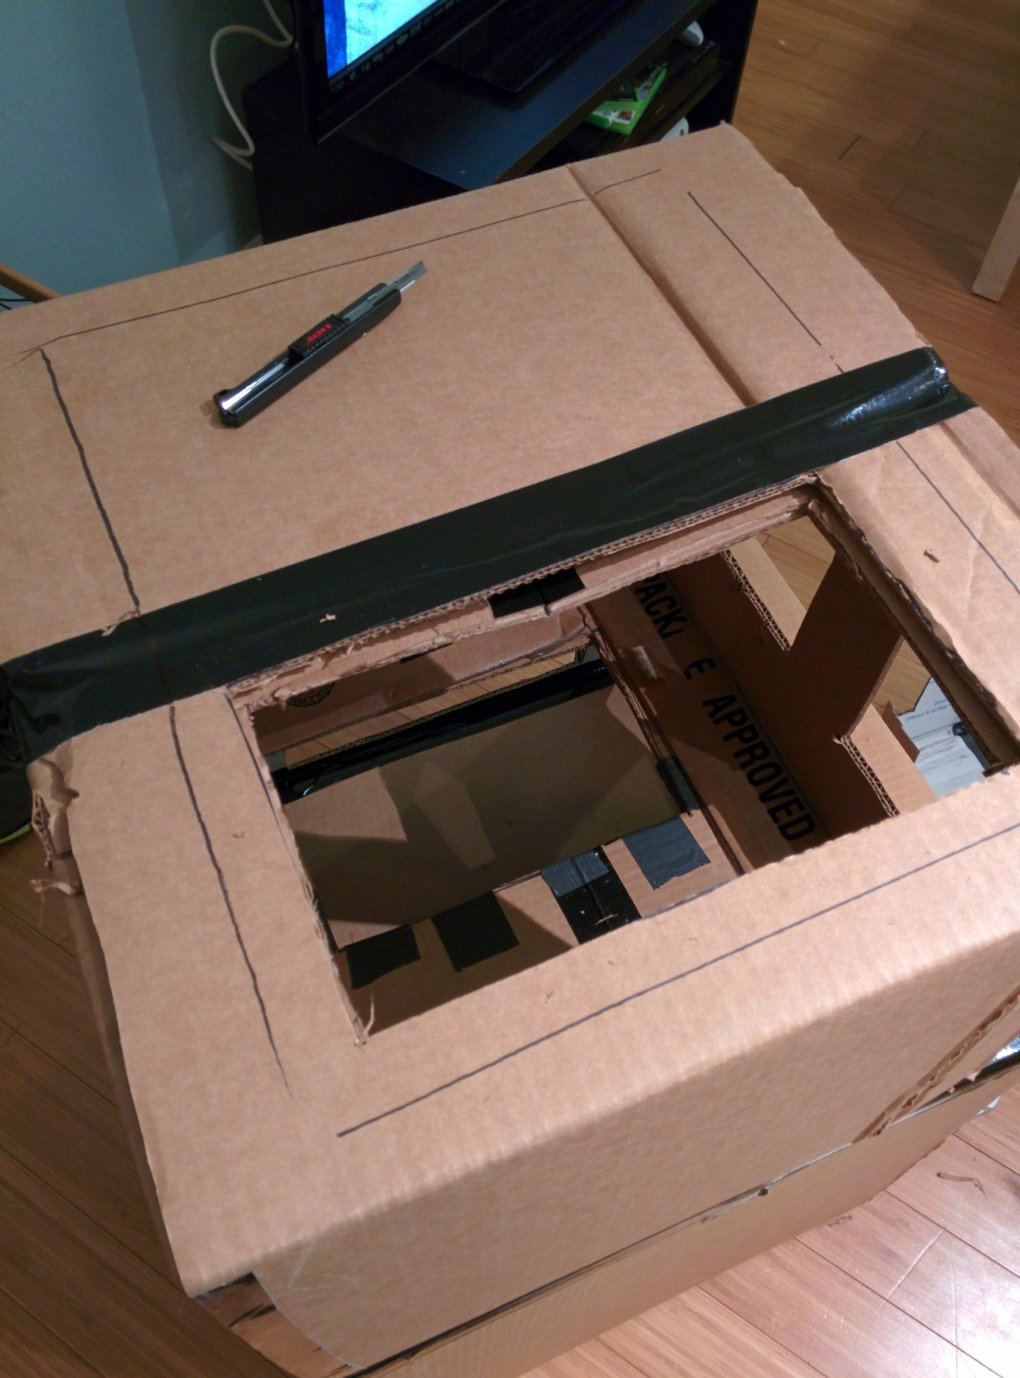 x3tmpey - why don't we build cardboard castle to our cats? this is how to do it.